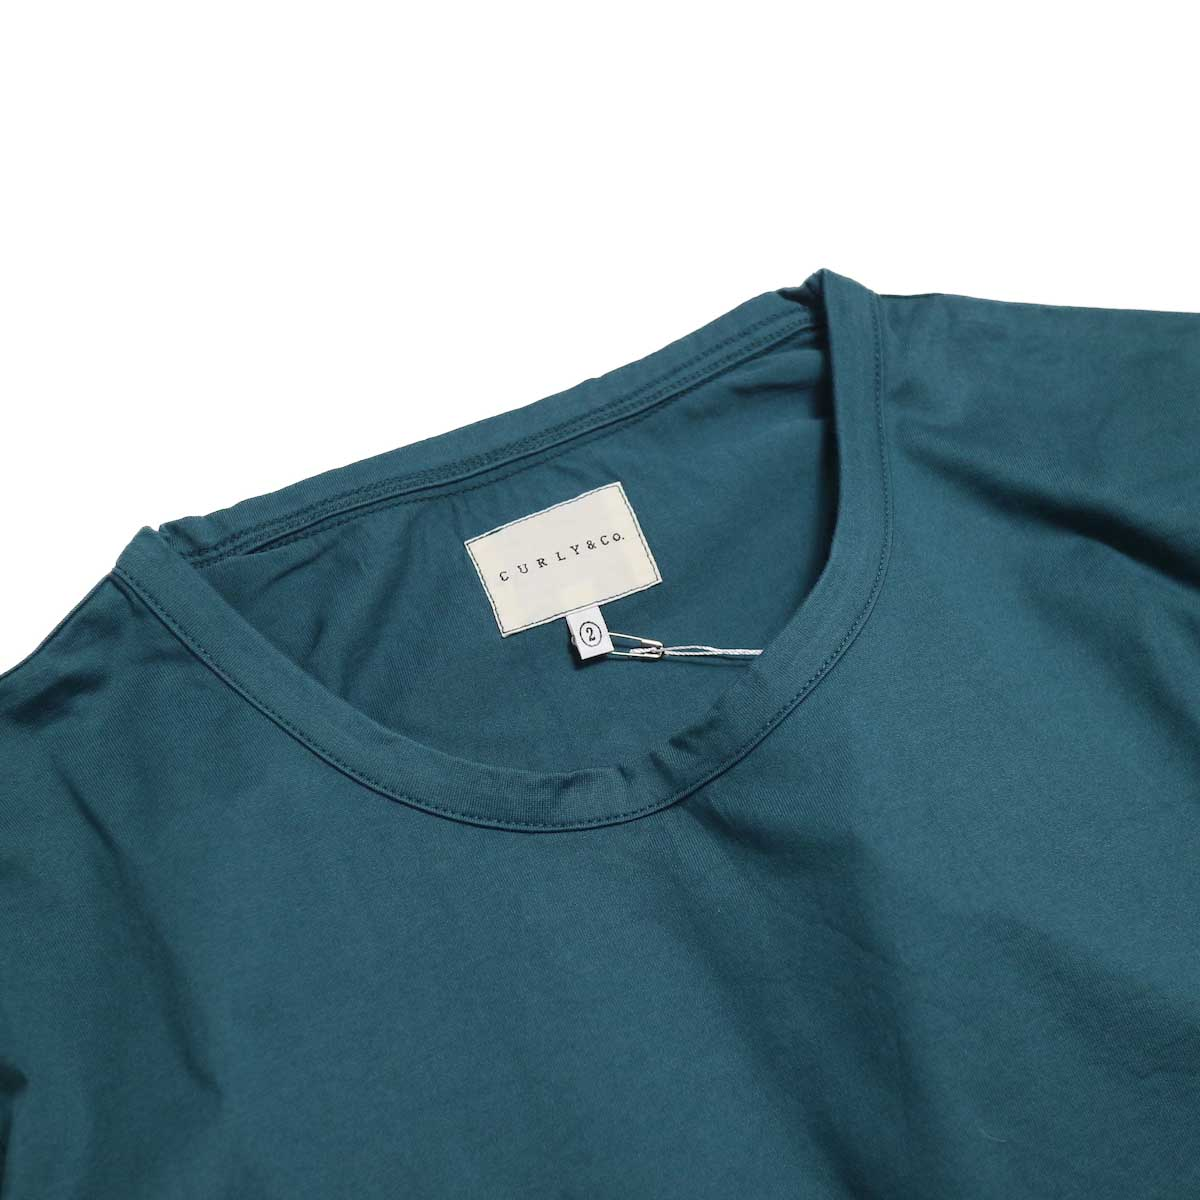 CURLY / SDH HS CN TEE -INK GREEN クルーネック